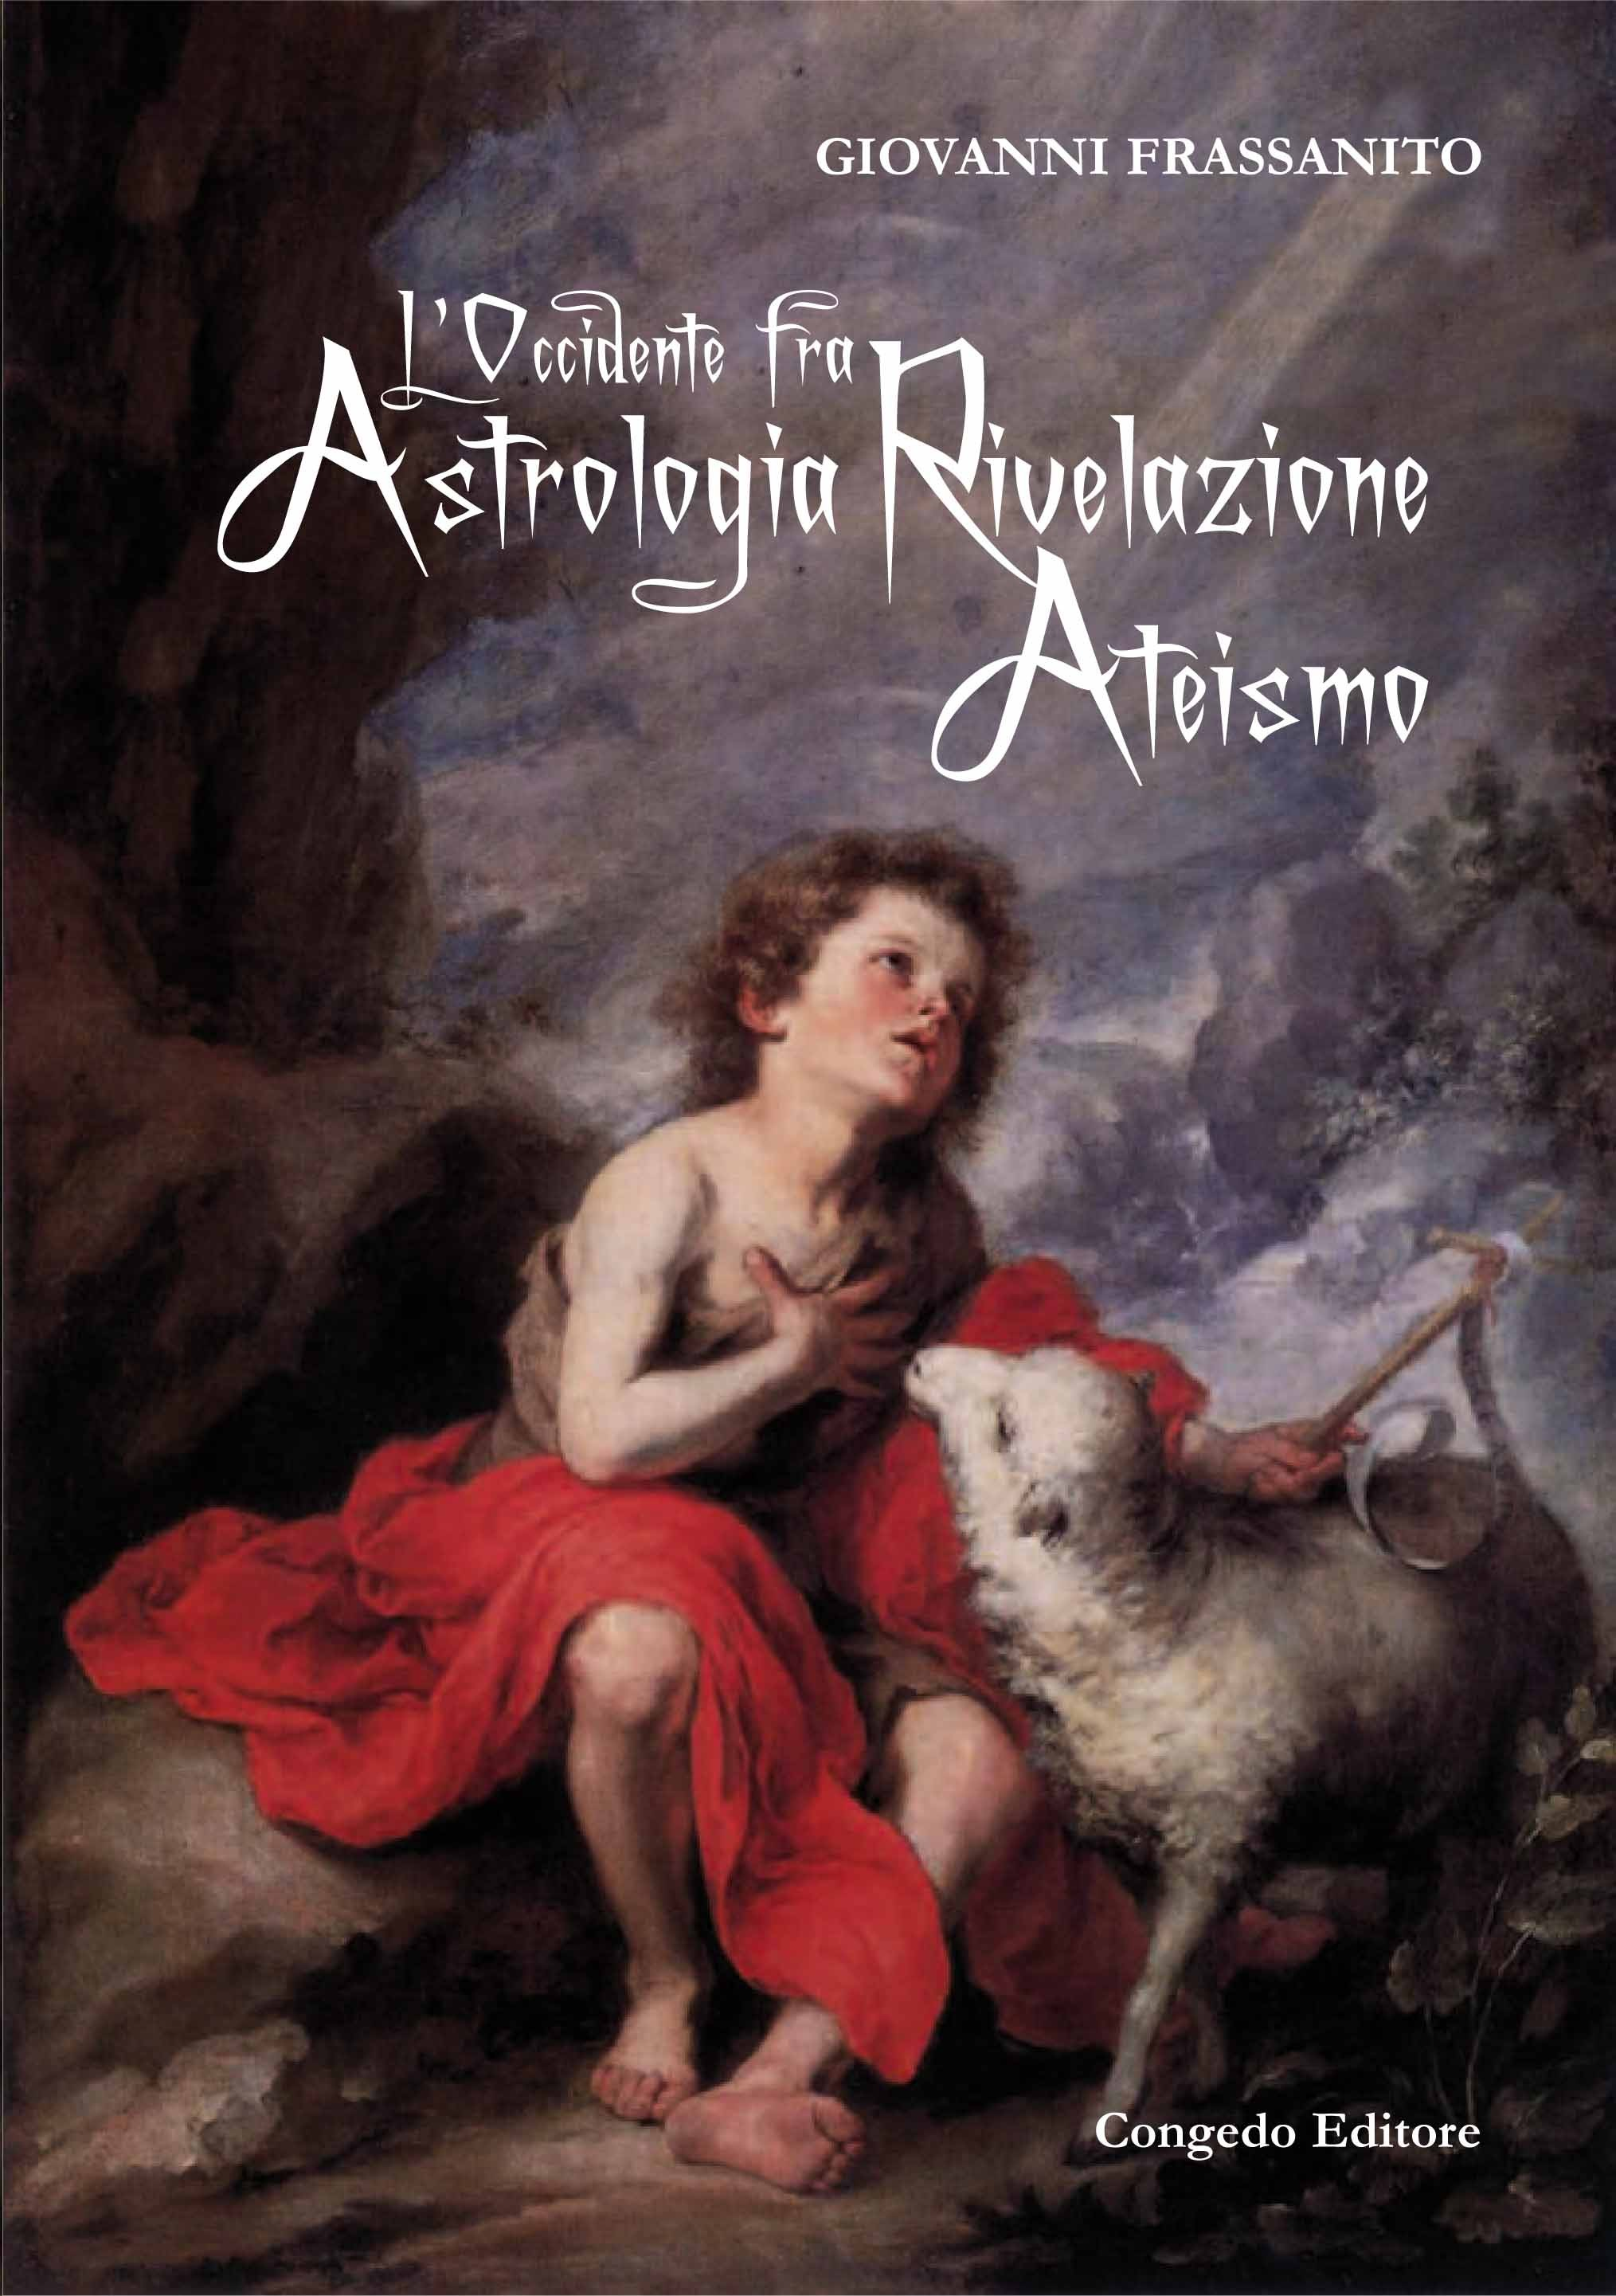 L'Occidente fra Astrologia Rivelazione Ateismo